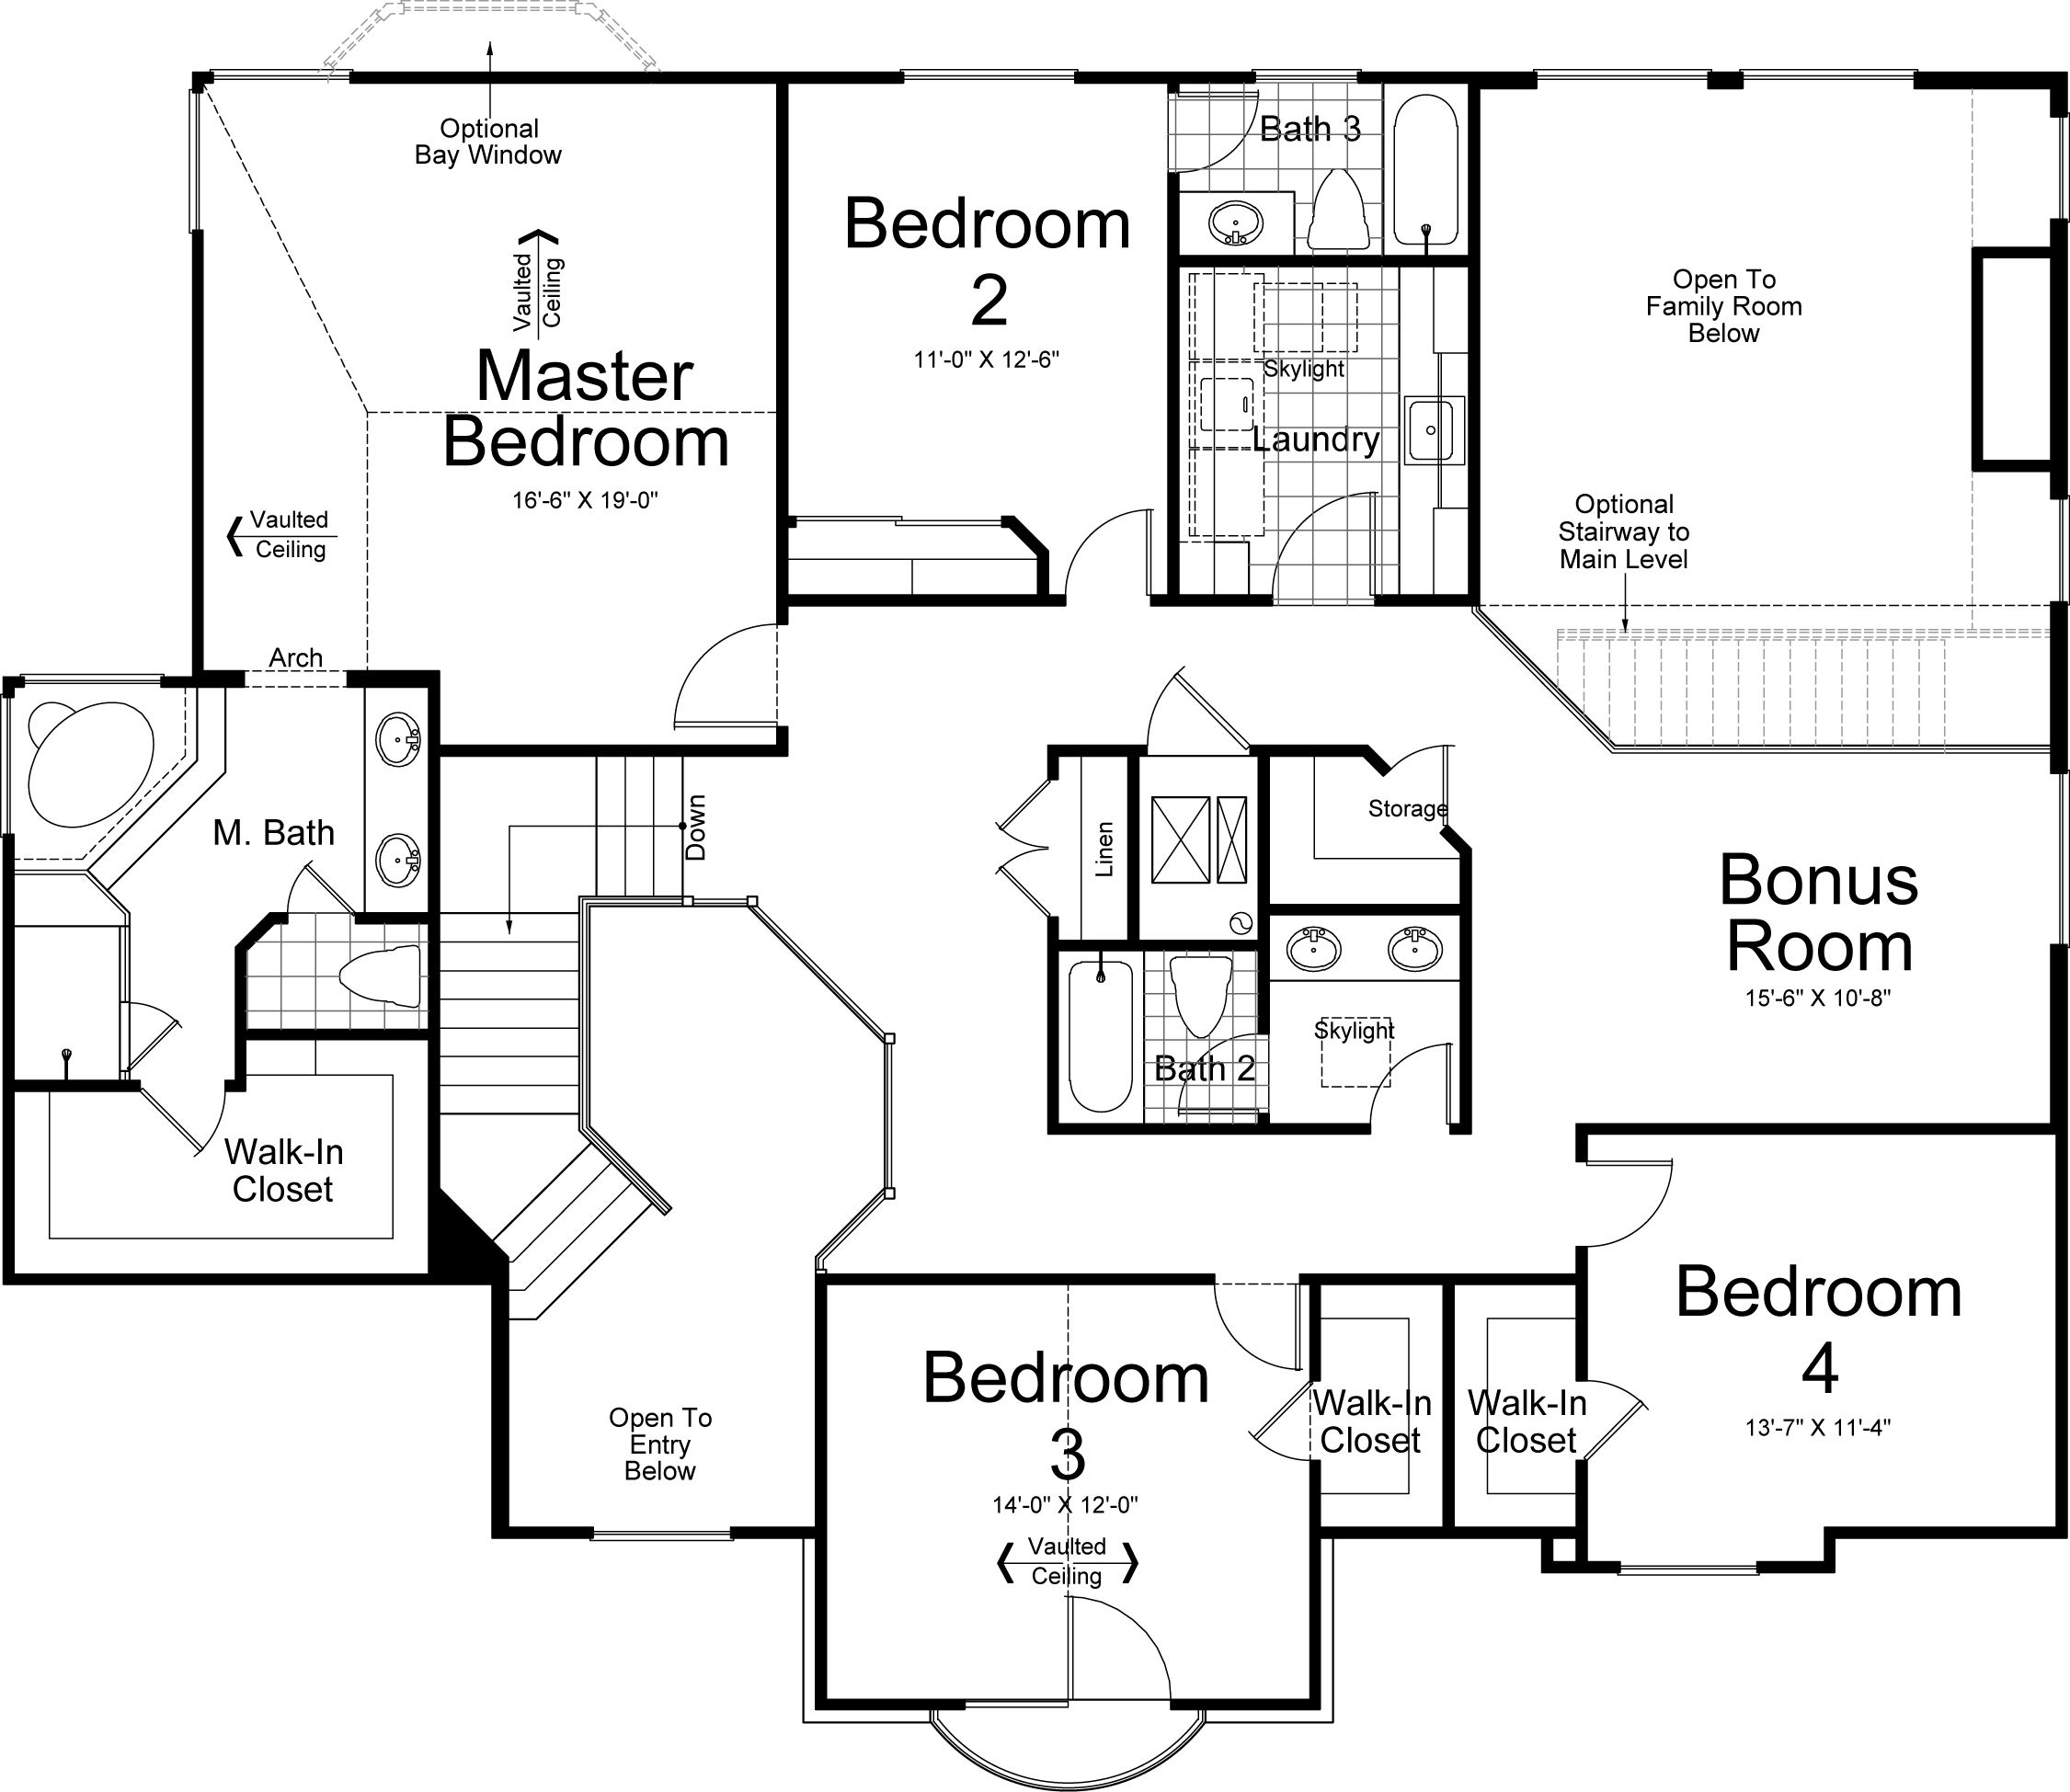 Home Design For New Homes In Utah Home Design Floor Plans Mobile Home Floor Plans Floor Plans